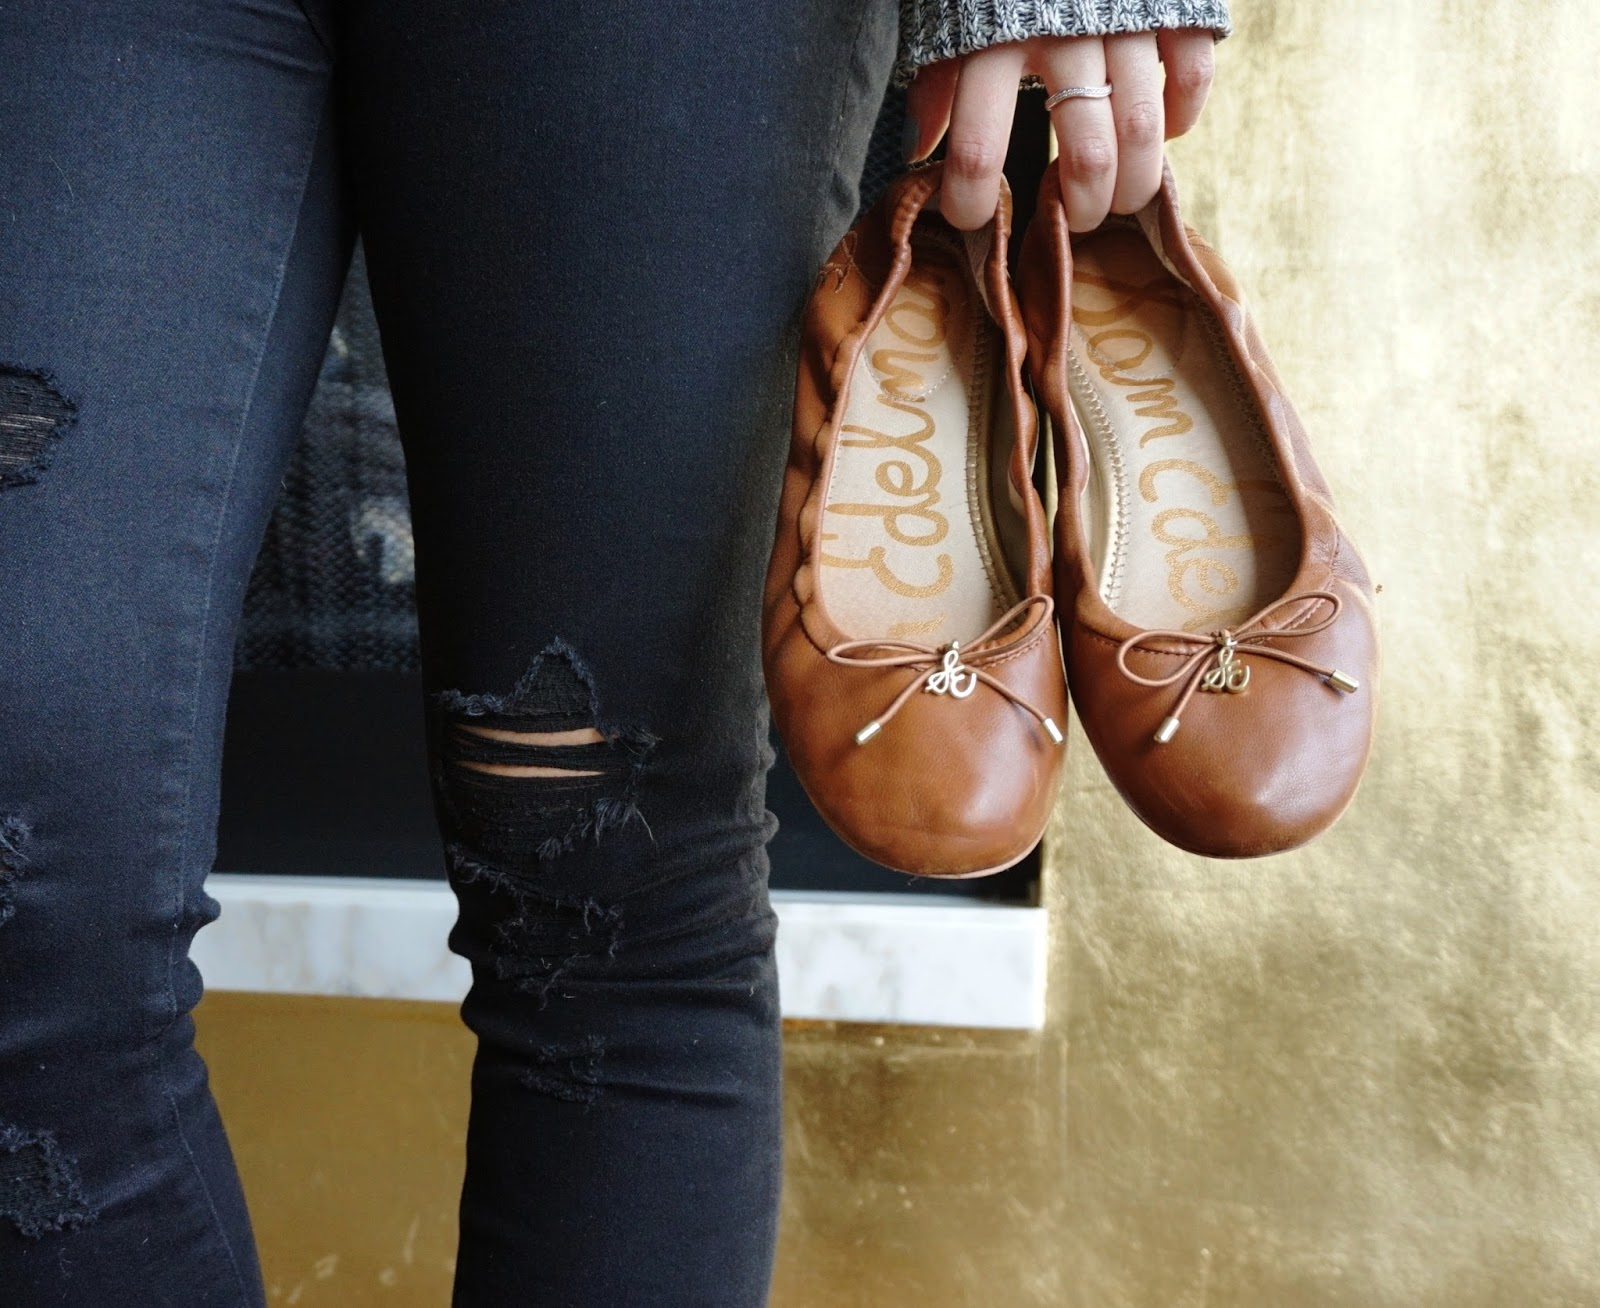 9cfe1d673face Sam Edelman Felicia Flats in Saddle Leather - One Year Use Review ...